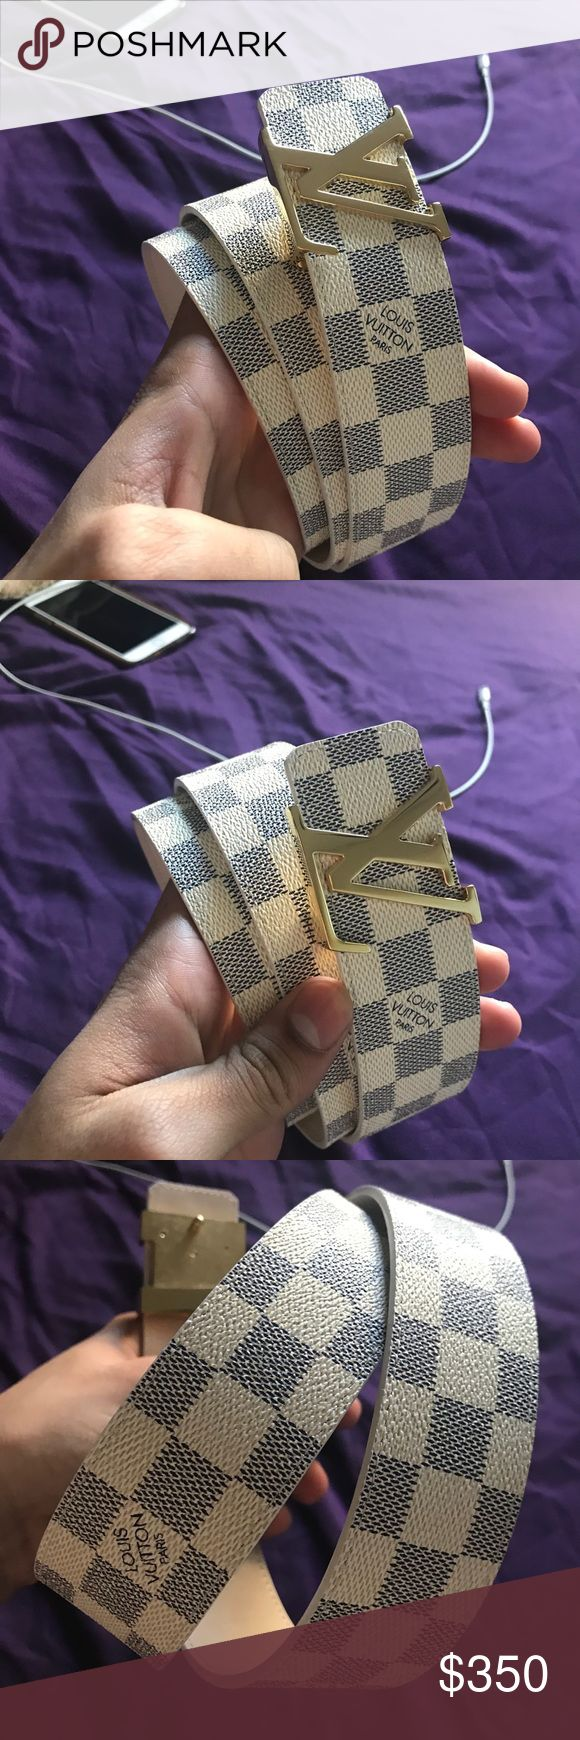 White and Gold Buckle Azure LV Louis Vuitton Belt BRAND NEW LV LOUIS VUITTON BELT CINTO DESIGNER BELT NEVER WORN BEFORE  DEADSTOCK BELT Retail is $550+ All im askin for is $350 OBO Cash>Trades I AM WILLING TO SHIP PM ME IF YOU HAVE ANY QUESTIONS   Ignore: Designer belt, Designer belts, LV, Louis vuitton, Gucci, Fendi, Belt, designer, black louis belt Read Less Read Less Read Less Louis Vuitton Accessories Belts